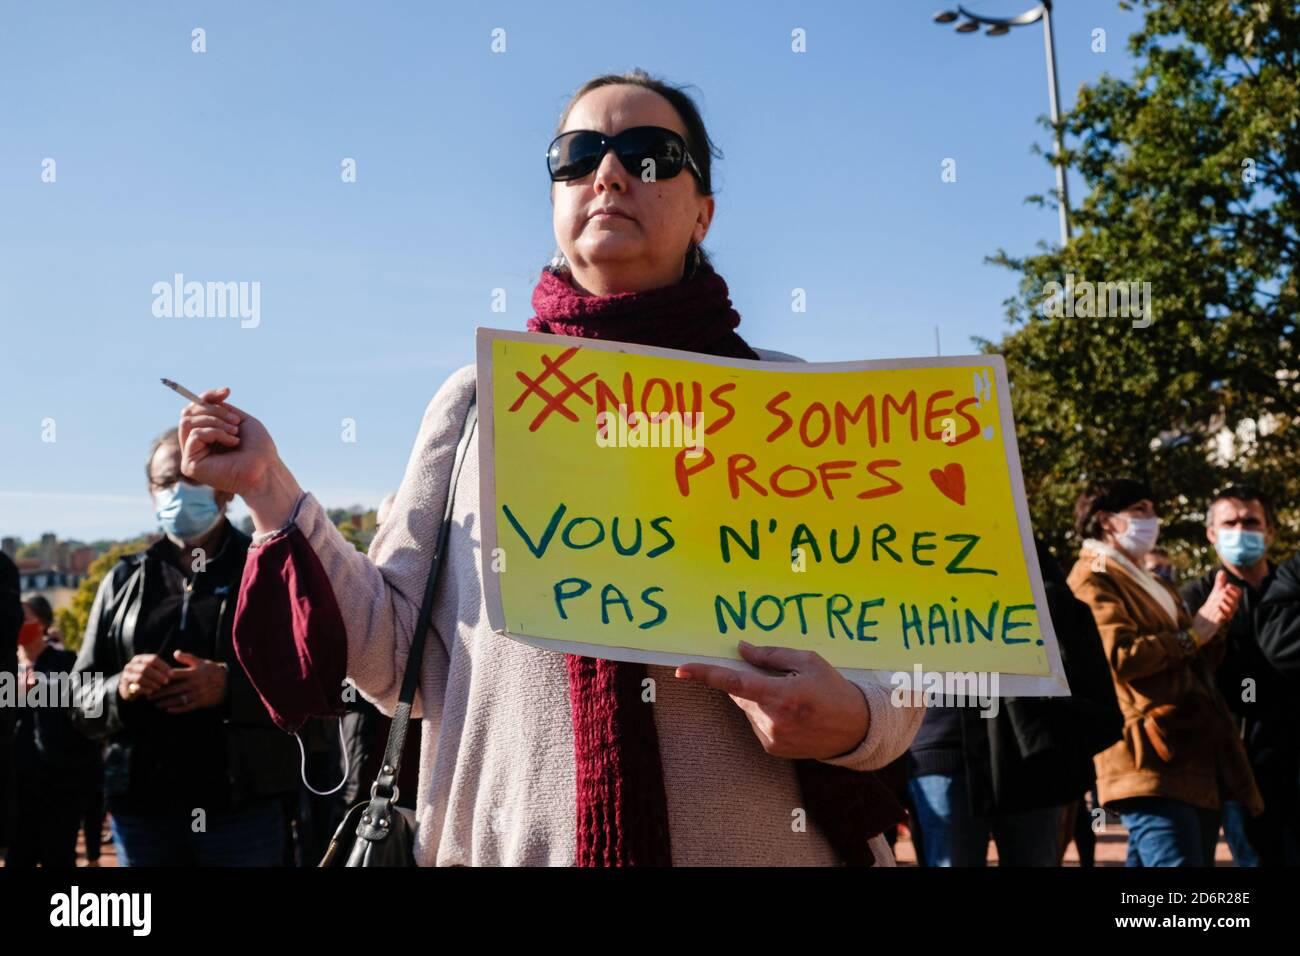 On 18/10/2020, Lyon, Auvergne-Rhône-Alpes, France. The International League Against Racism and Antisemitism (licra) called for a rally on Place Bellec Stock Photo